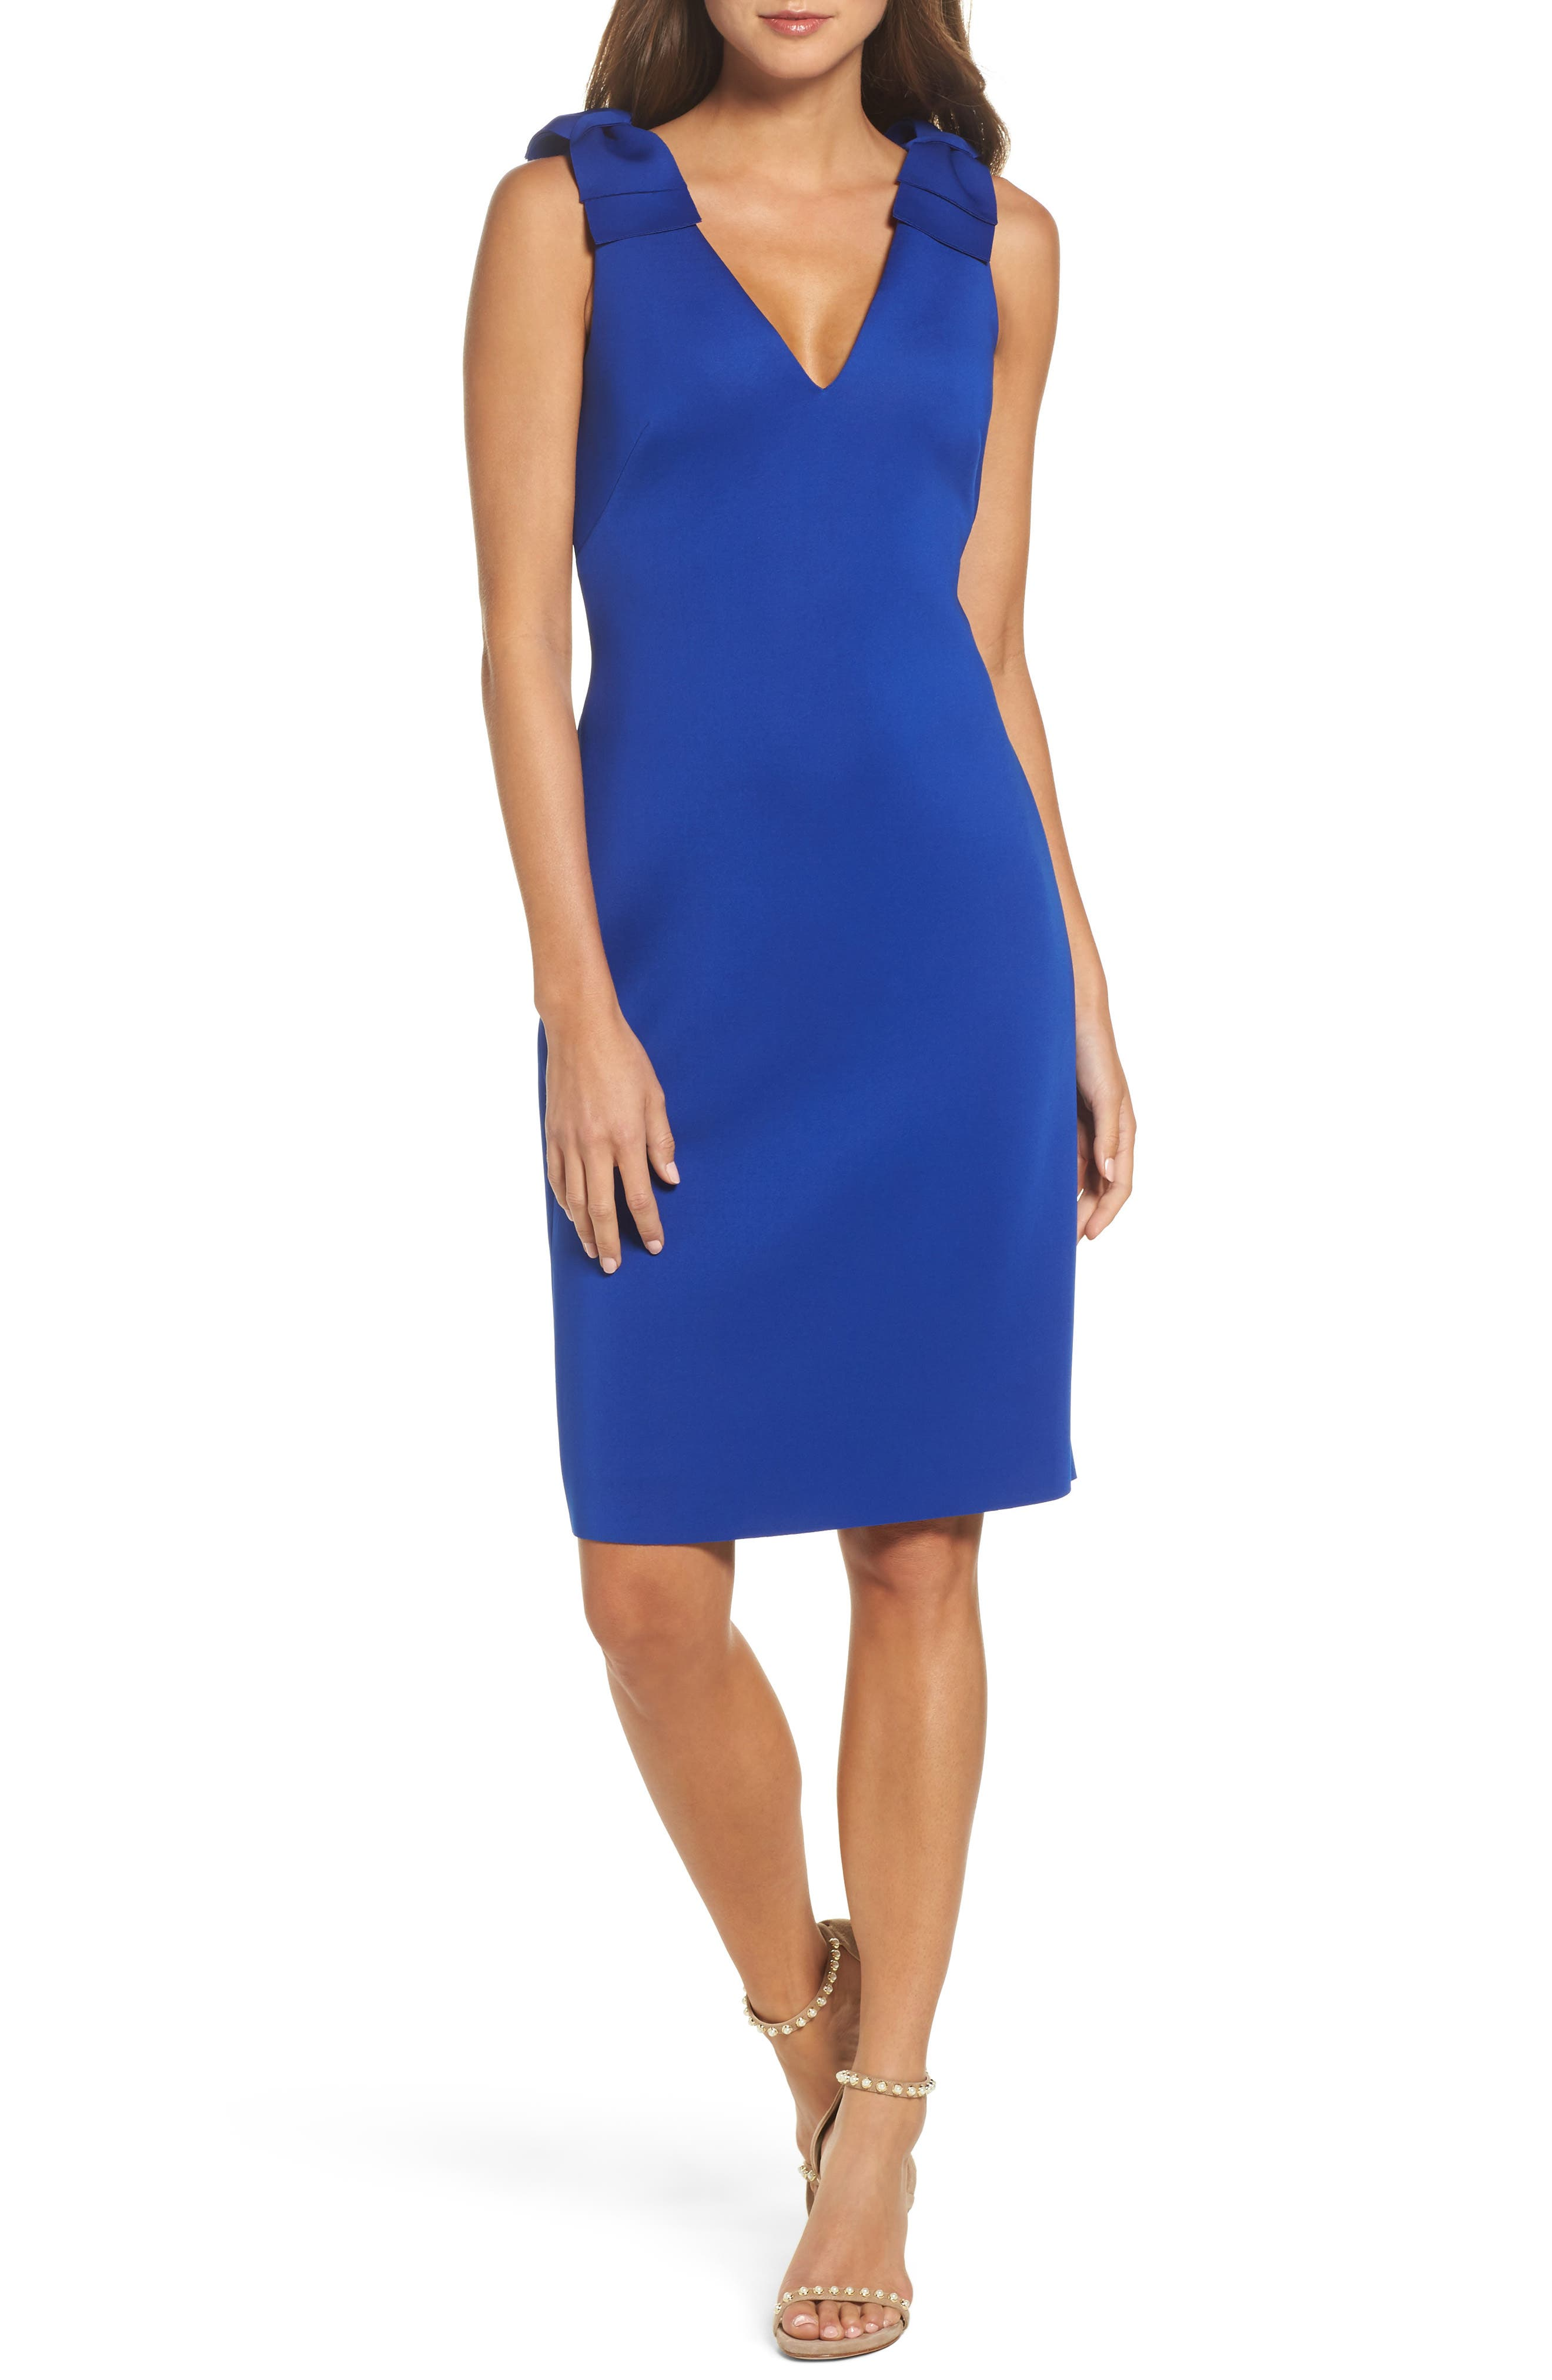 Alternate Image 1 Selected - Eliza J Bow Sheath Dress